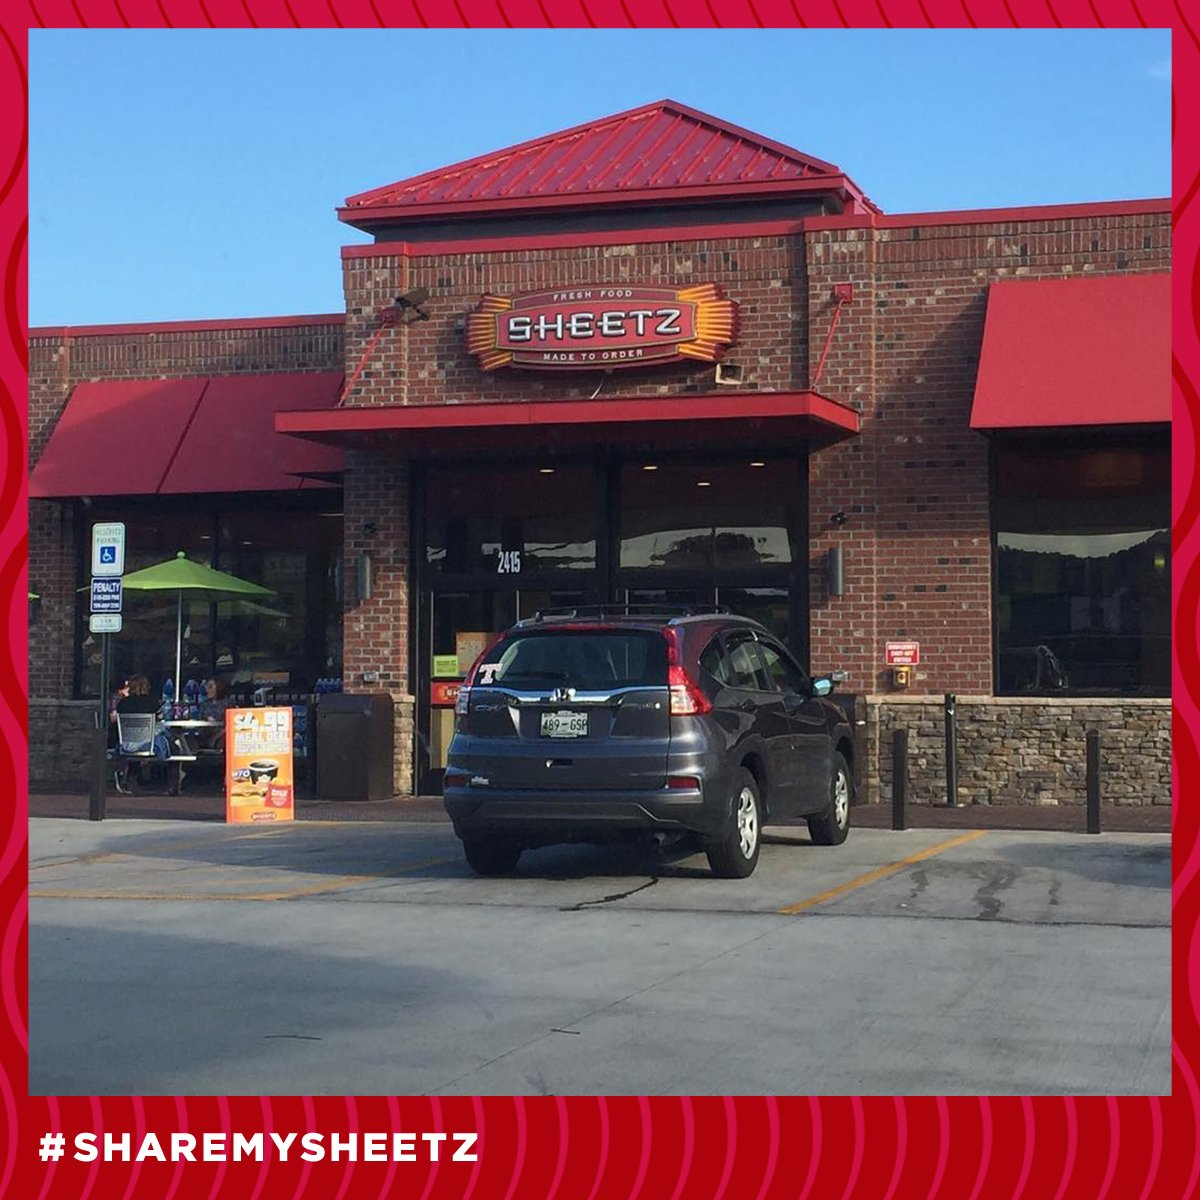 Sheetz On Twitter Heading Home To Sheetzcountry Tell Us Which